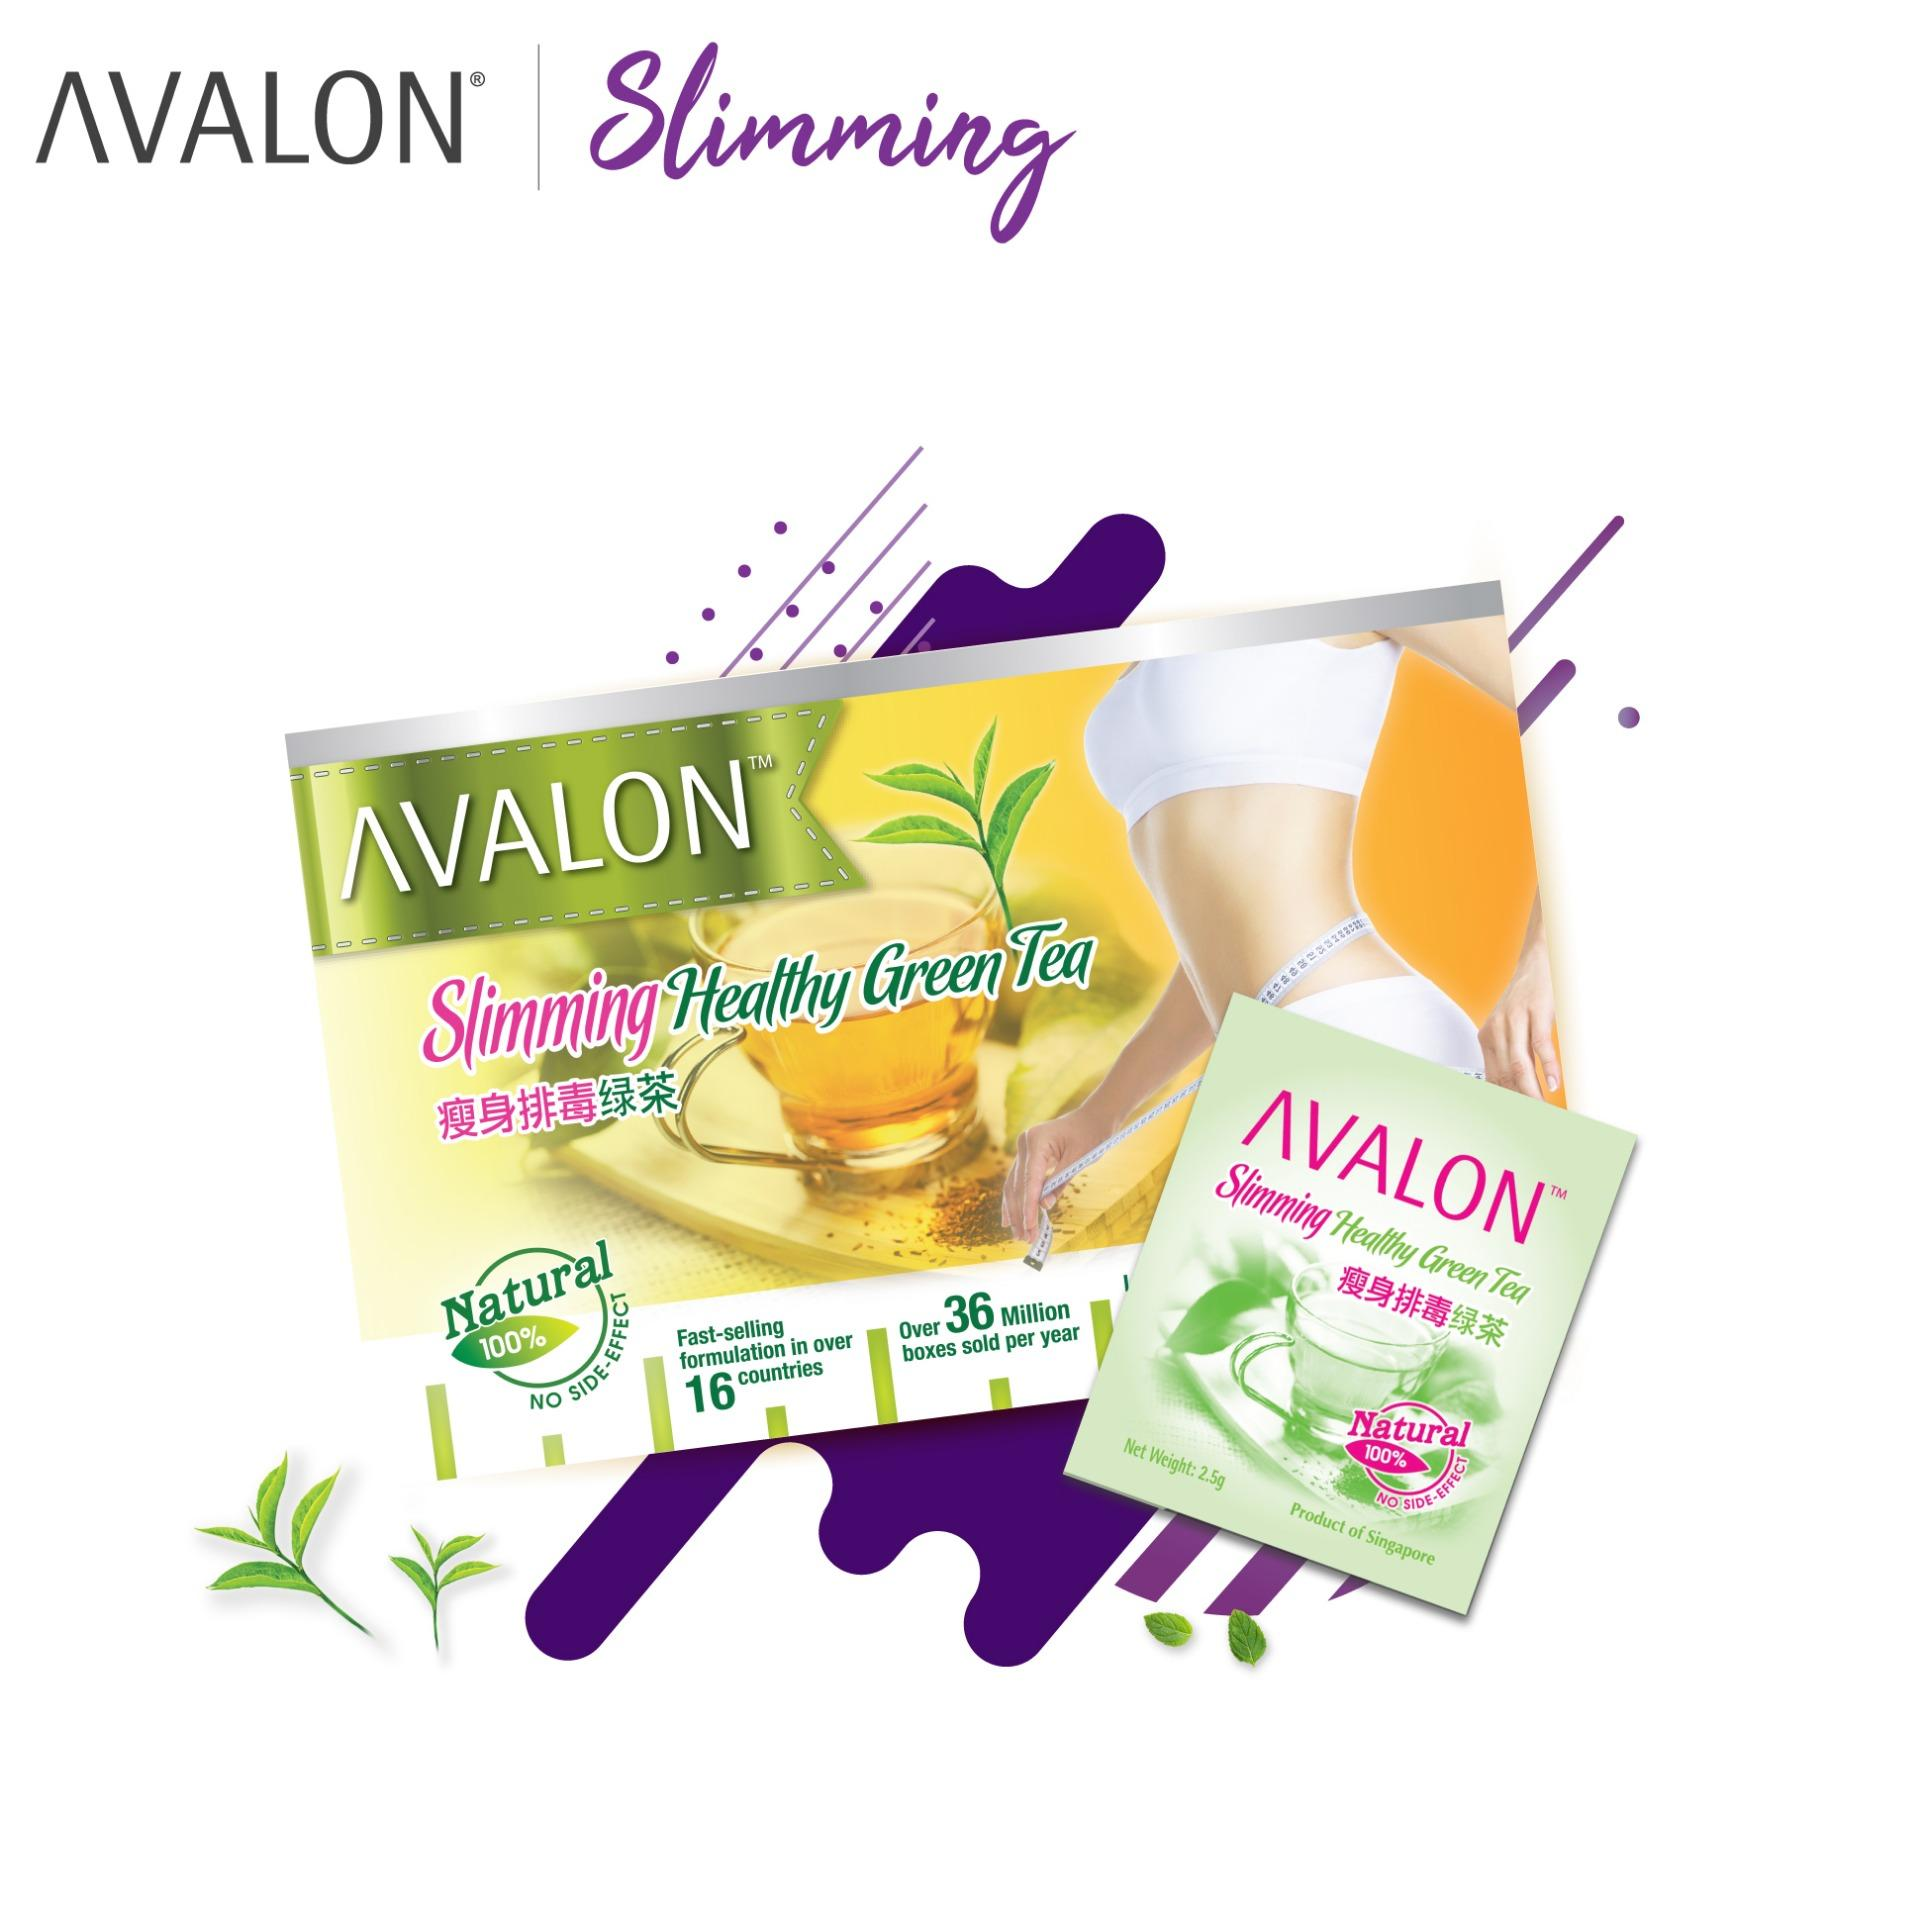 Avalon Slimming Healthy Green Tea By Avalon Official E-Store.